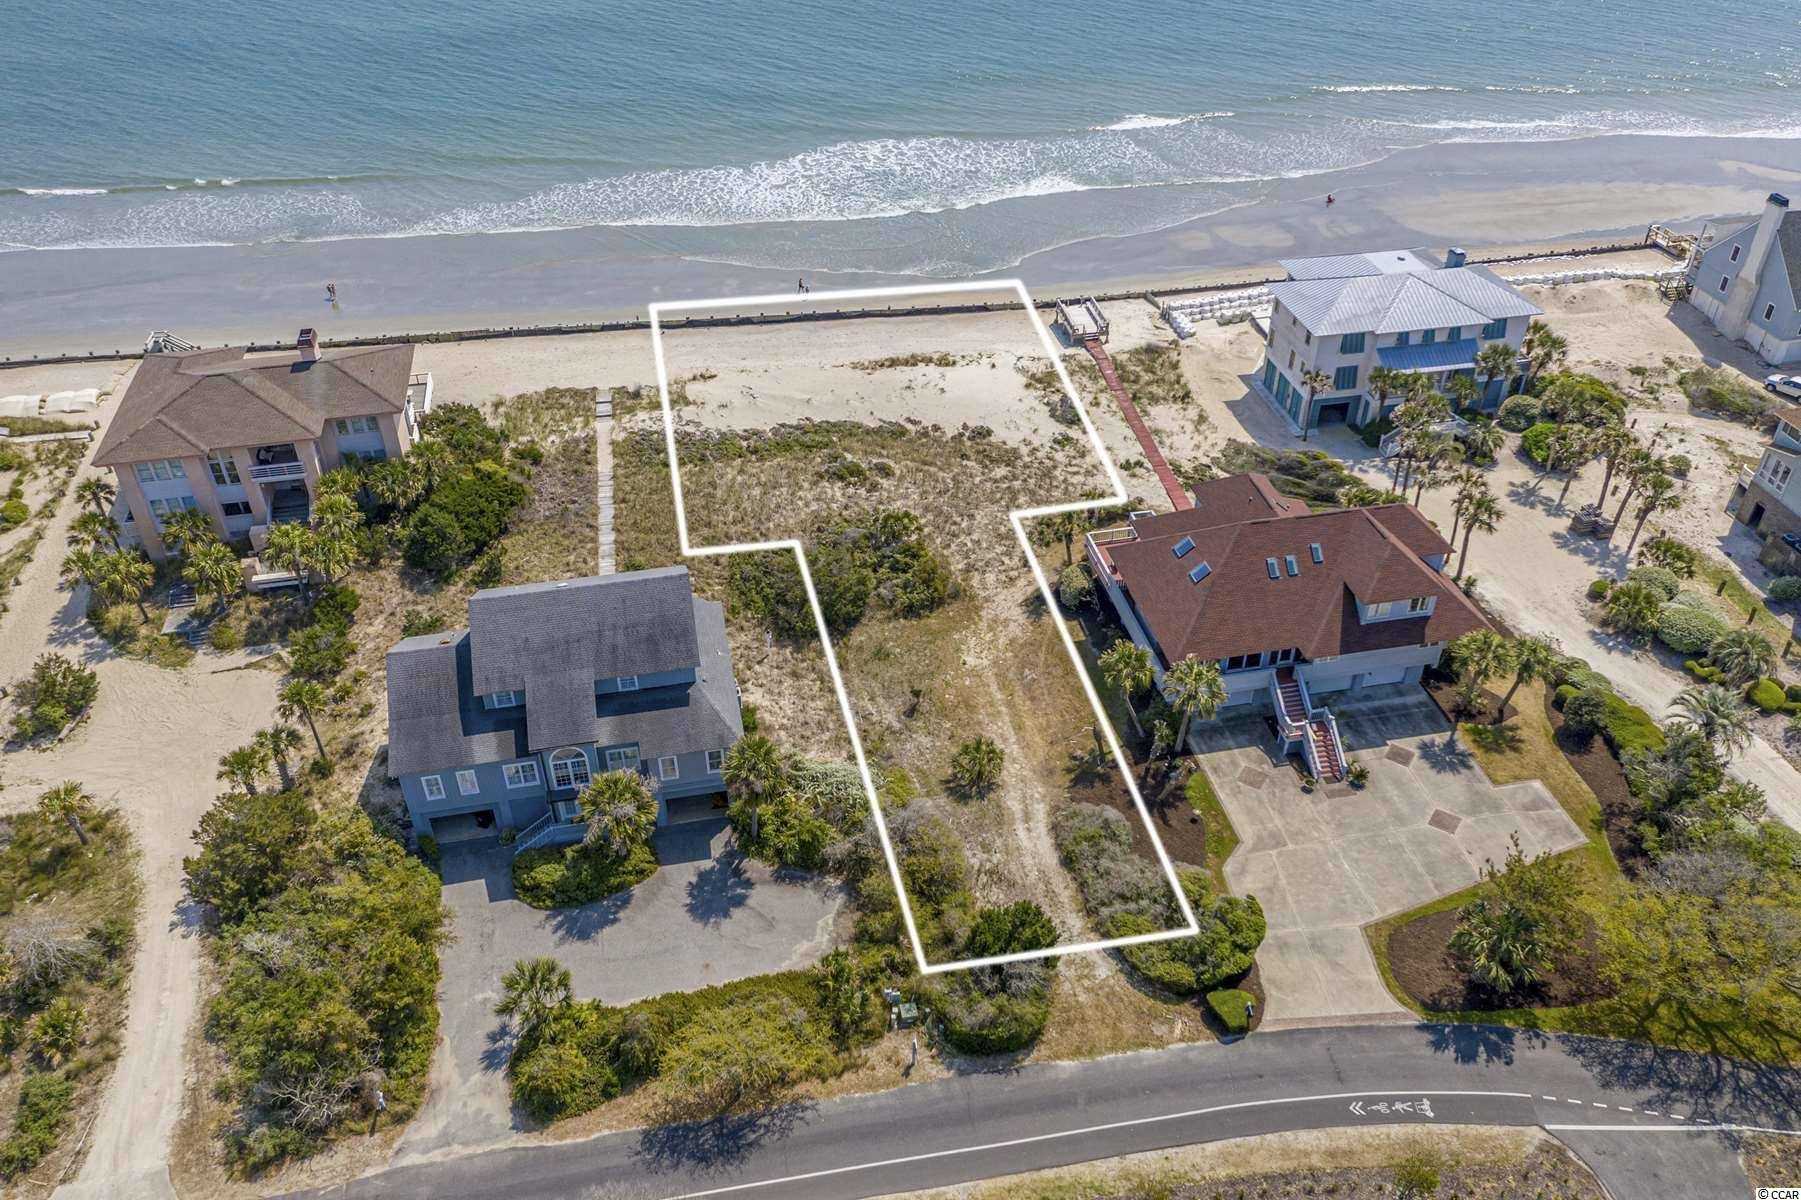 Amazing opportunity to build your very own Trophy Estate on this Direct Ocean Front lot in the highly sought after gated community of DeBordieu Colony ! Lot 3 DeBordieu Blvd offers almost 100 ft. of breathtaking direct ocean front views ! Truly a rare occasion to purchase one of DeBordieu's last ocean front lots. Enjoy 6.5 miles of private and beautiful beach. DeBordieu community amenities include: private golf, beach club villa, golf clubhouse, tennis courts, & North Inlet Creek access. Just a short day trip away to historic Charleston or you can head up to all the attractions of Myrtle Beach. Close to boutique shopping and dining in Pawleys Island. This would be the perfect opportunity for your very own vacation home or permanent residence. Contact the listing agent today for more information and to schedule a viewing !